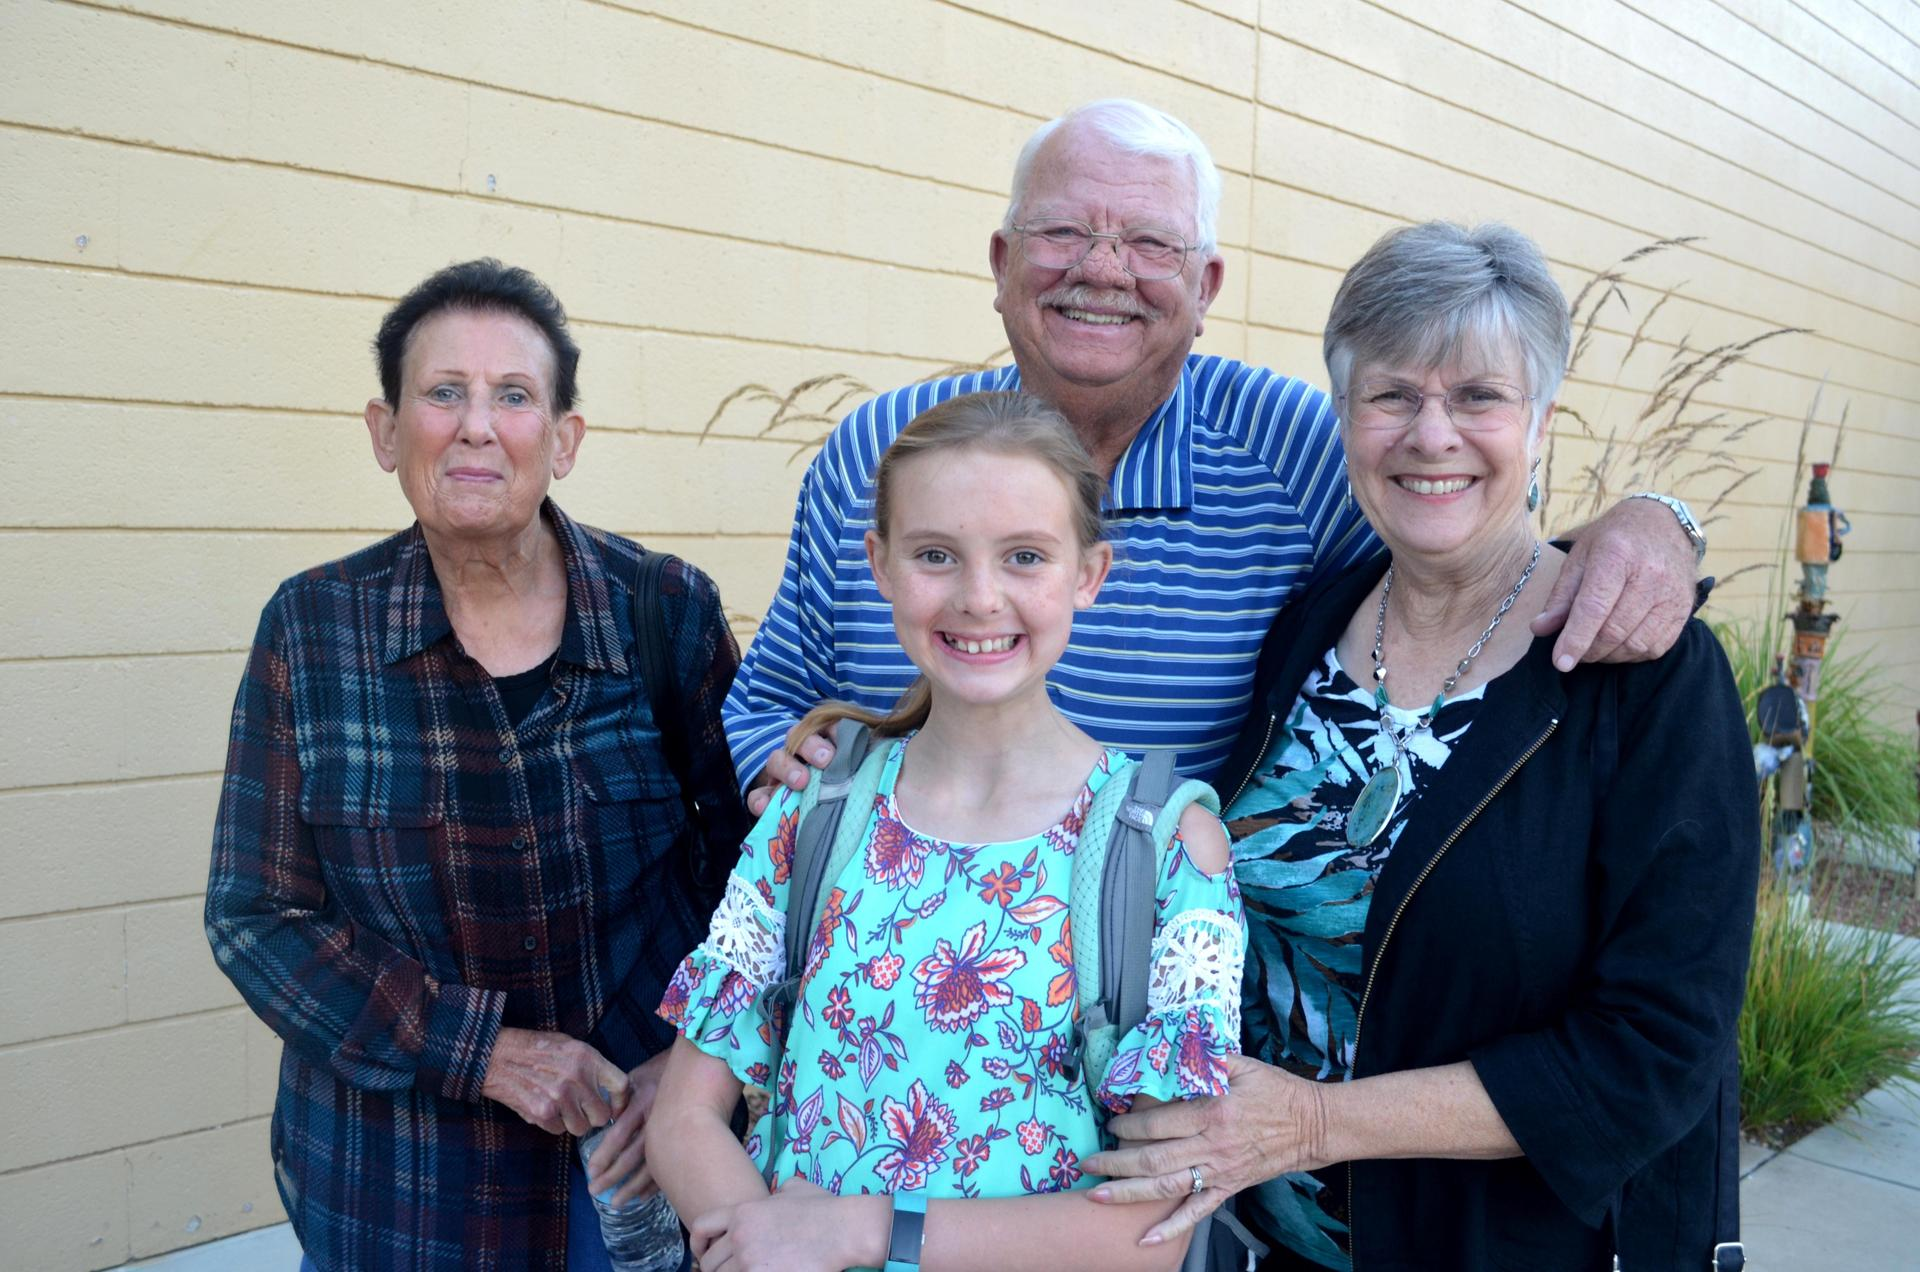 Students and grandparents smile at camera